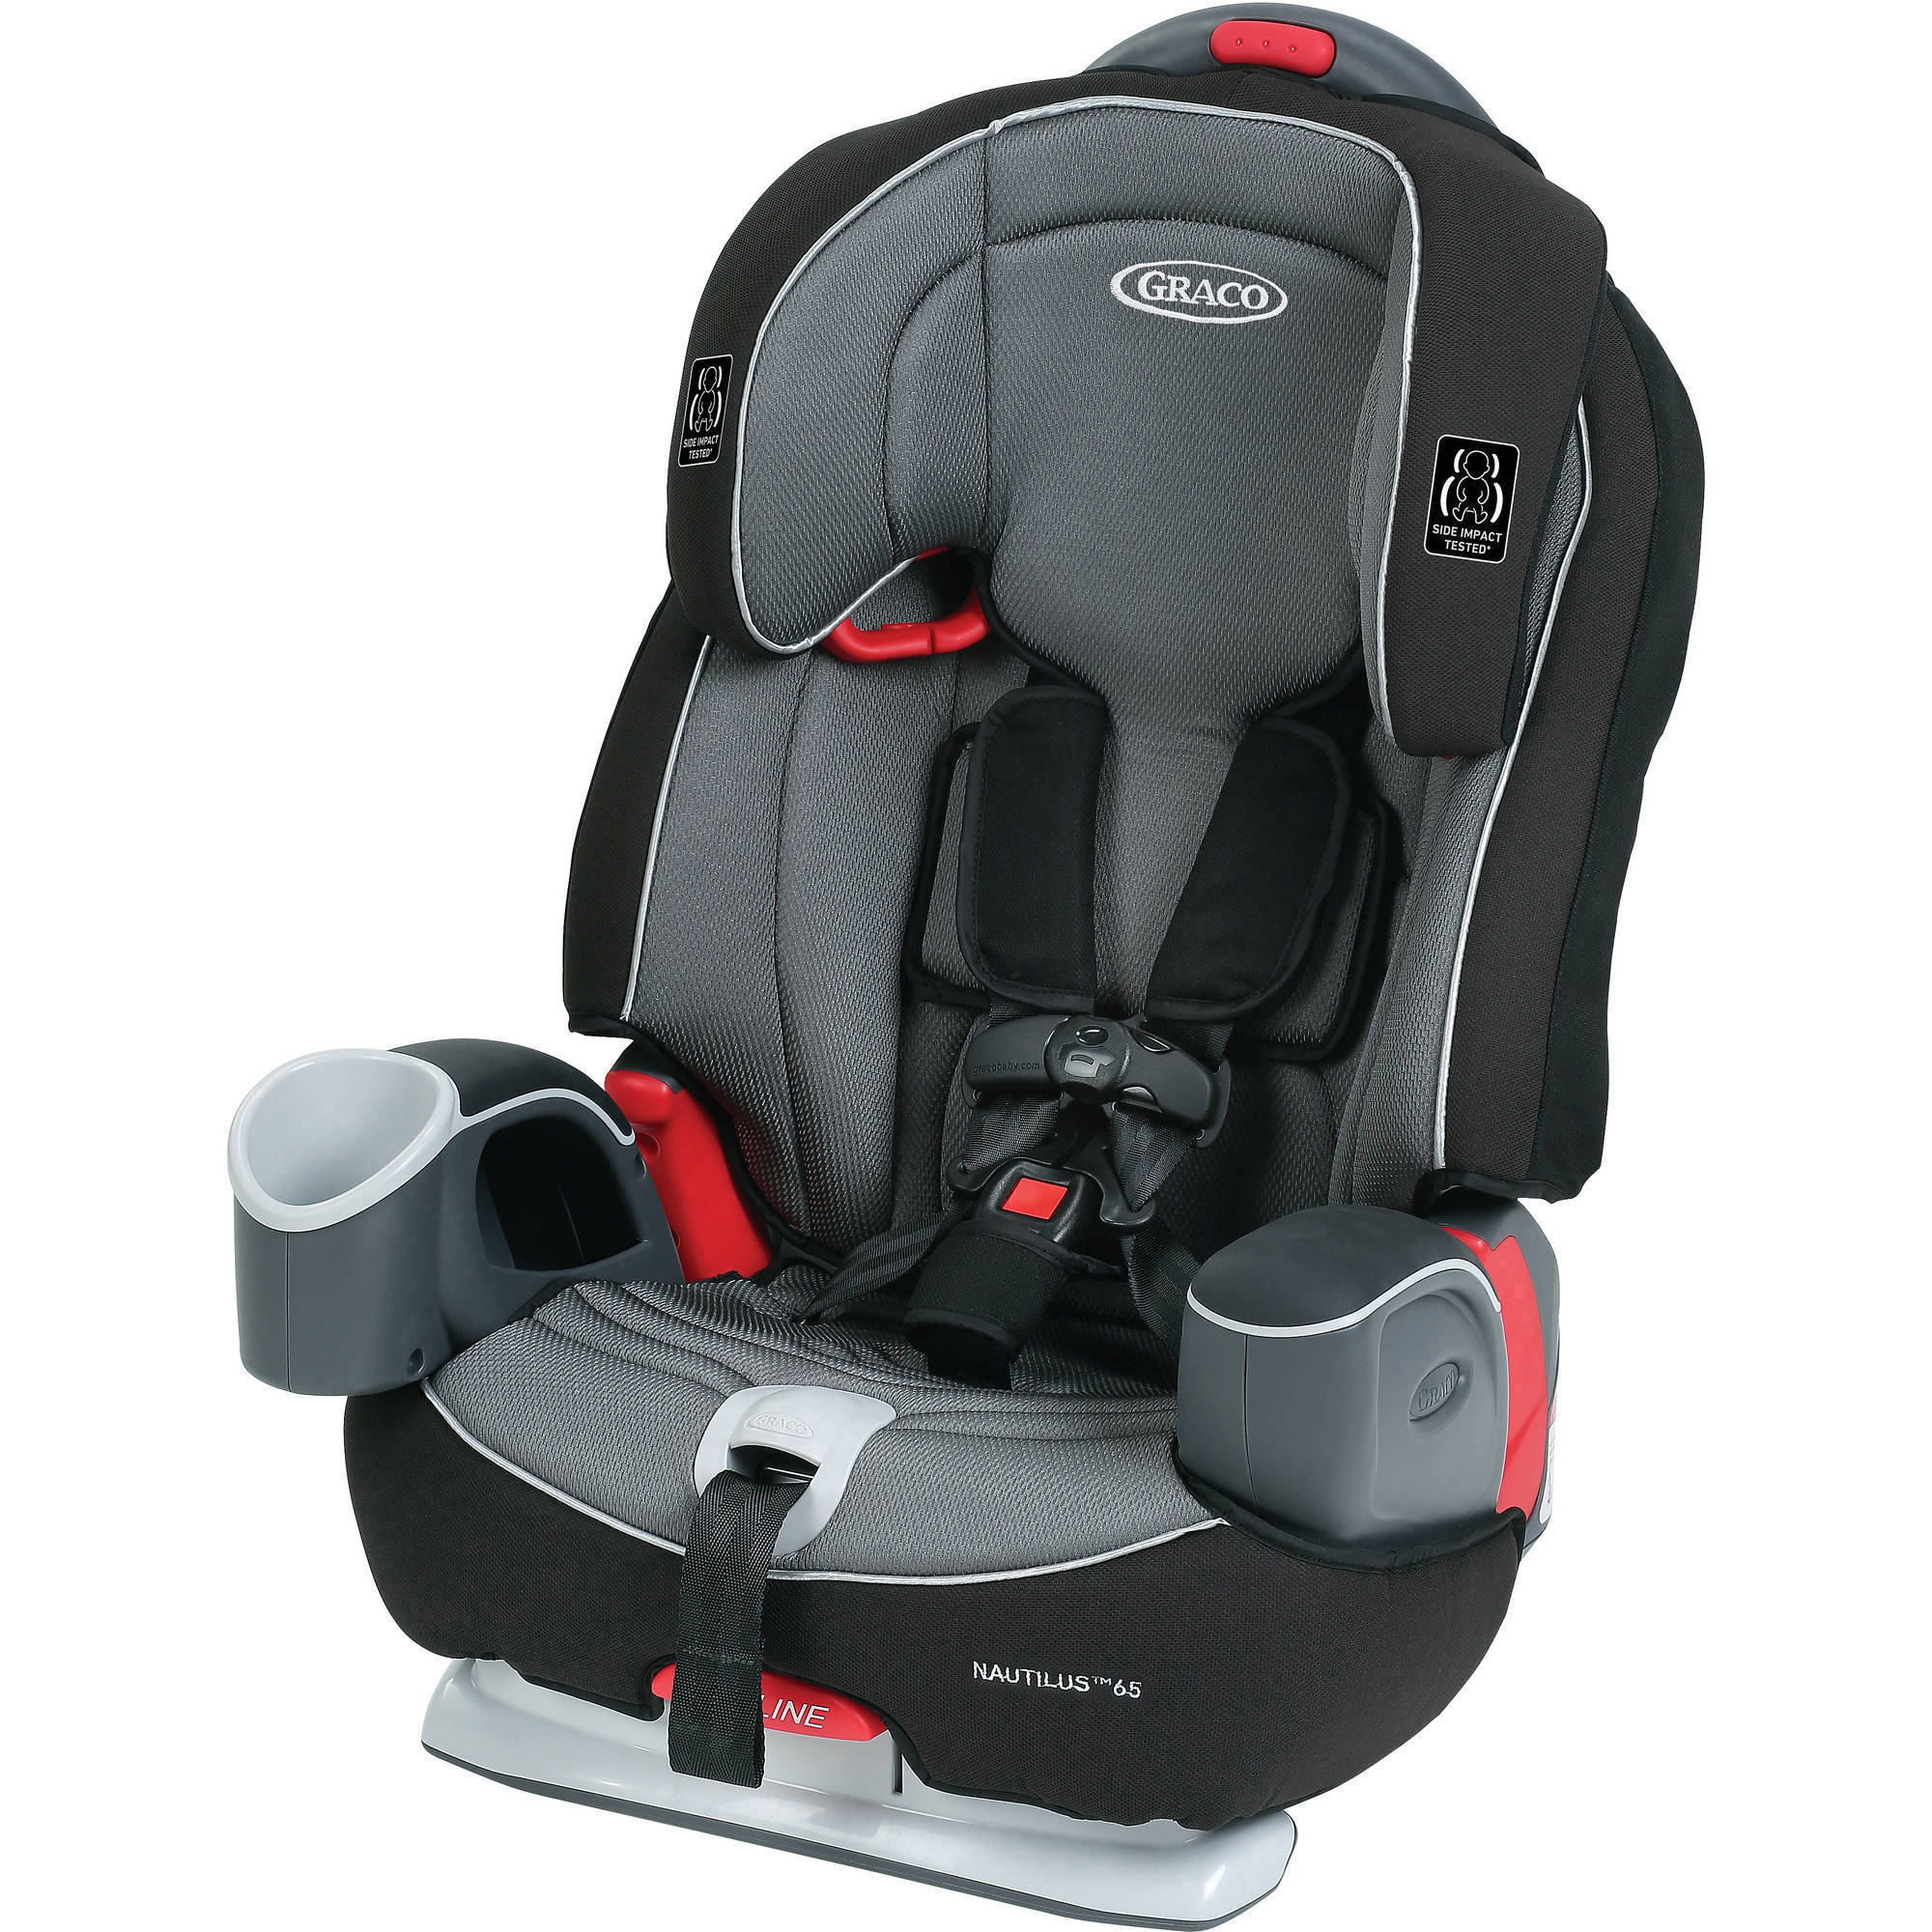 Graco Nautilus 65 3-in-1 Harness Booster Car Seat, Bravo ...